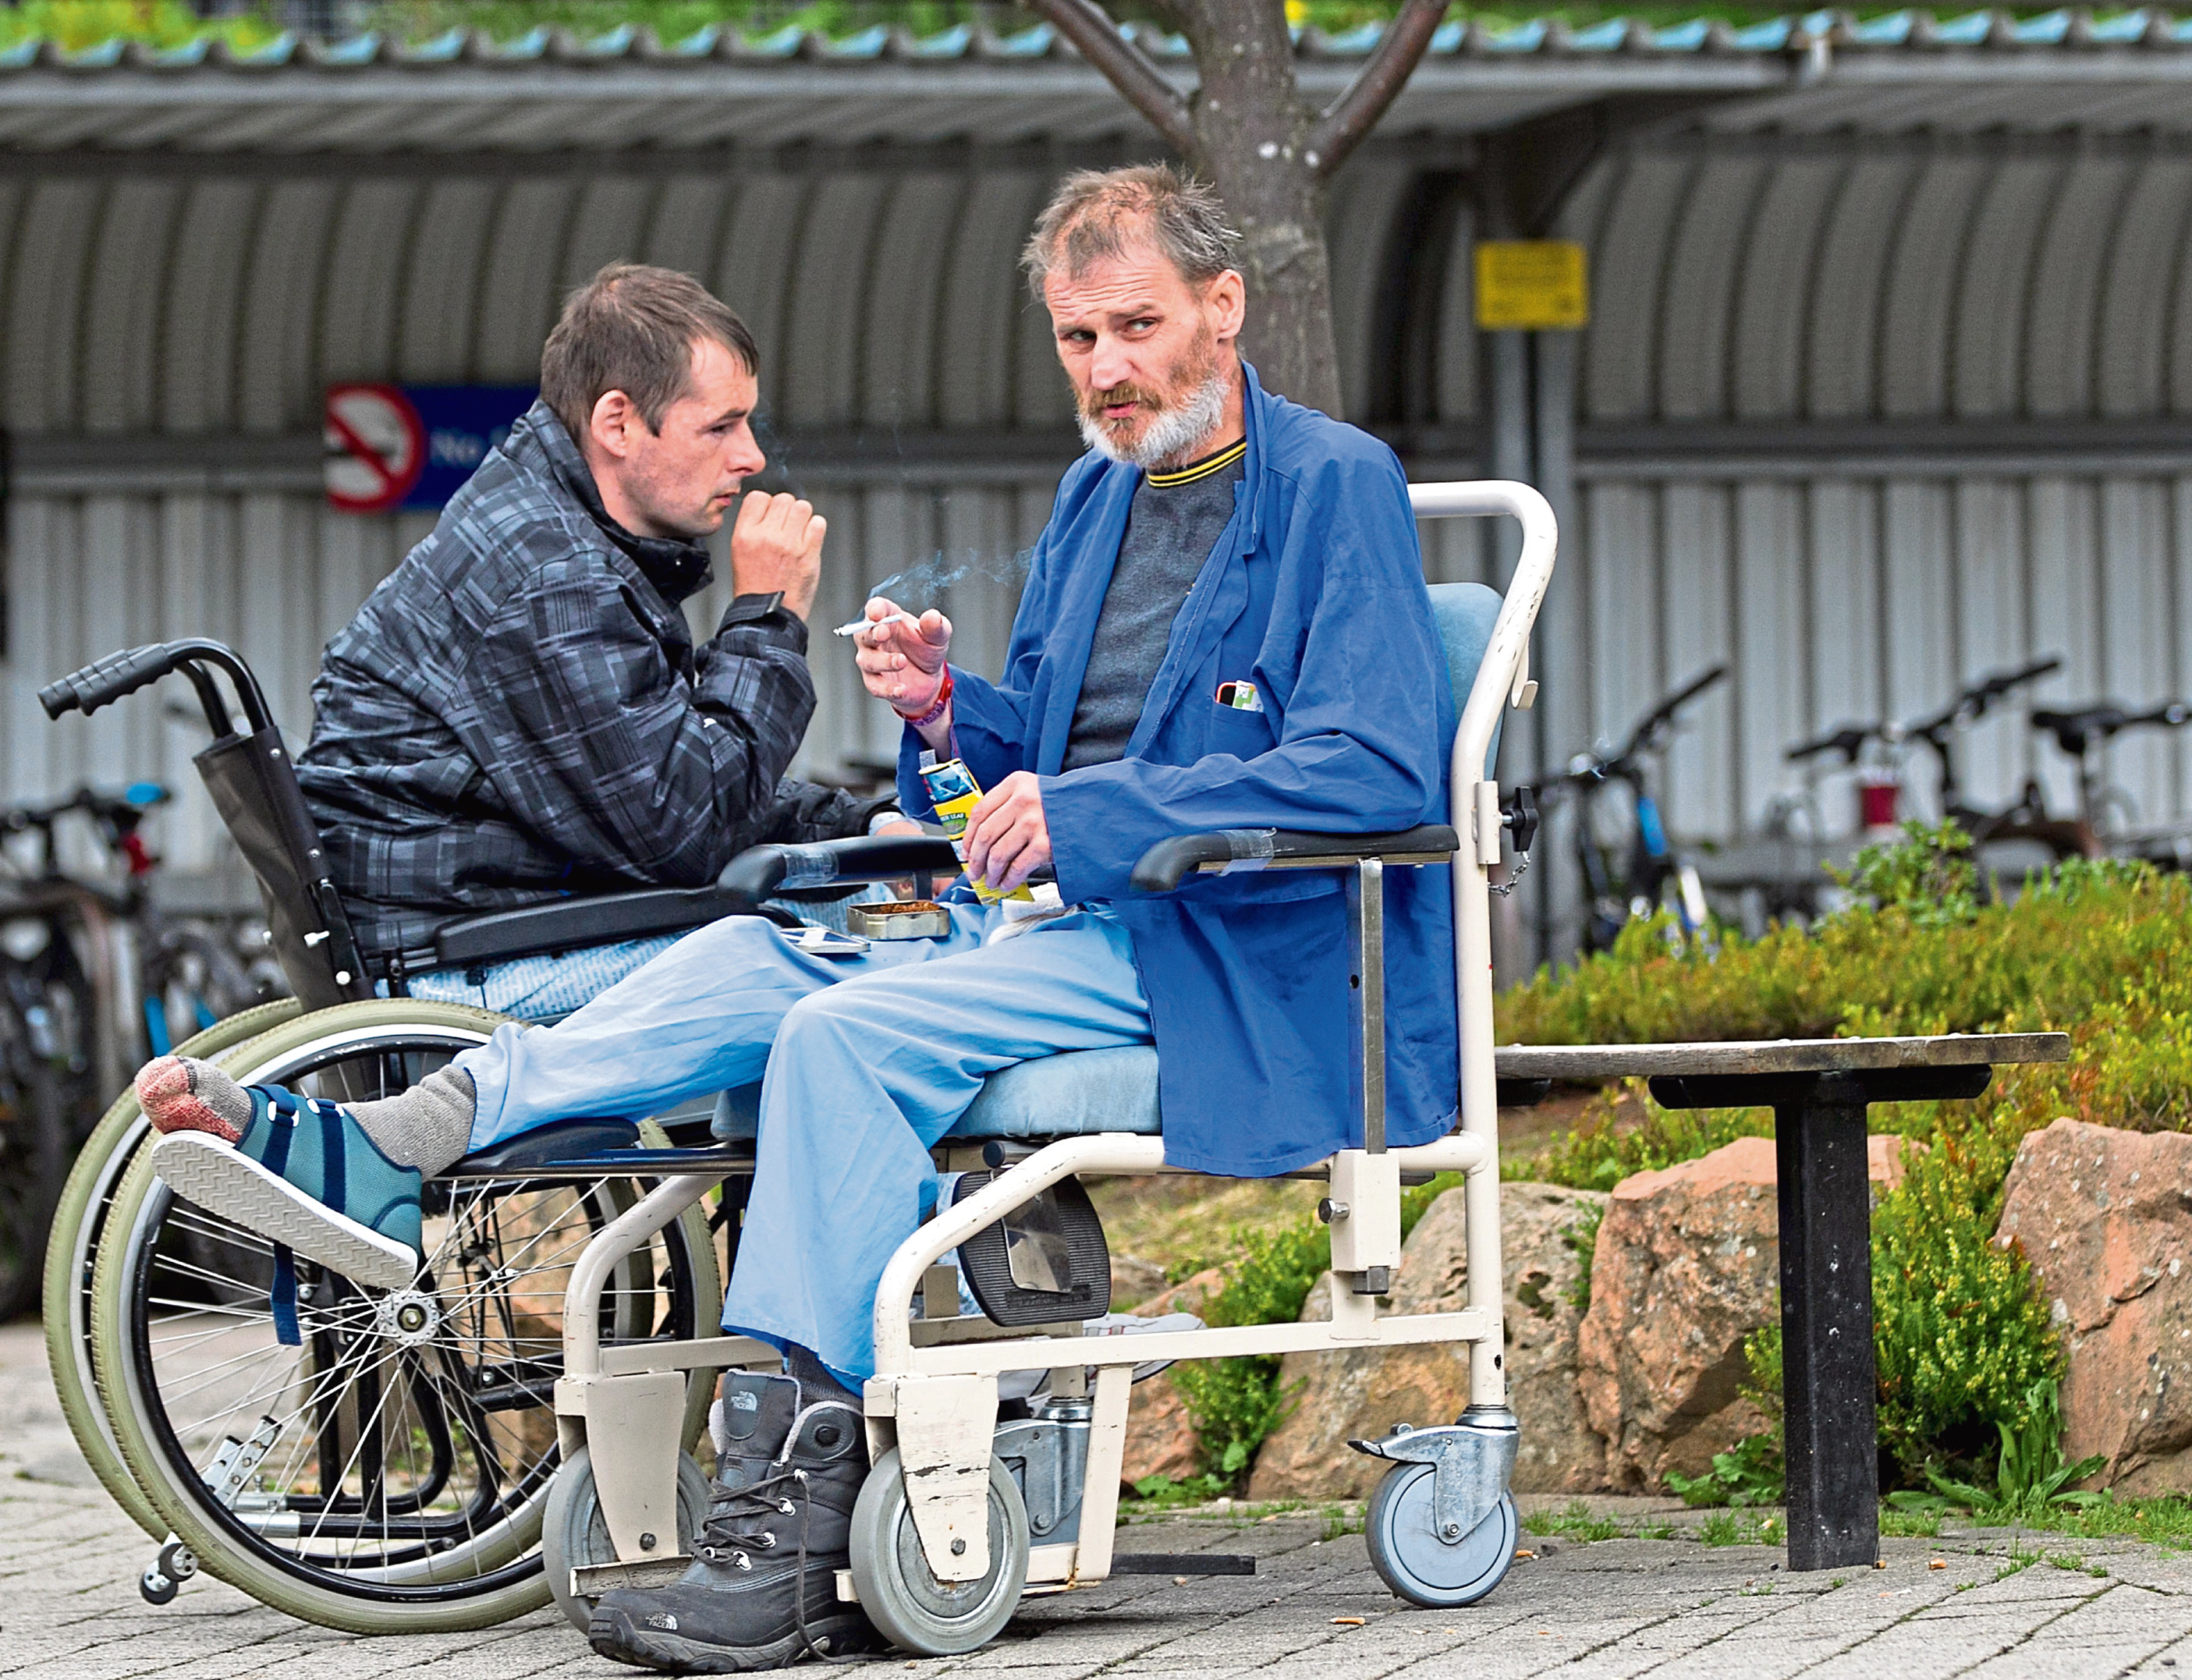 """2/9/2015. Sunday Post. Andrew Cawley. Pics of people smoking on hospital grounds, where it is not allowed. Pic shows smokers in the """"Fresh Air Garden"""" near the entrance to Ninewells Hospital, Dundee"""